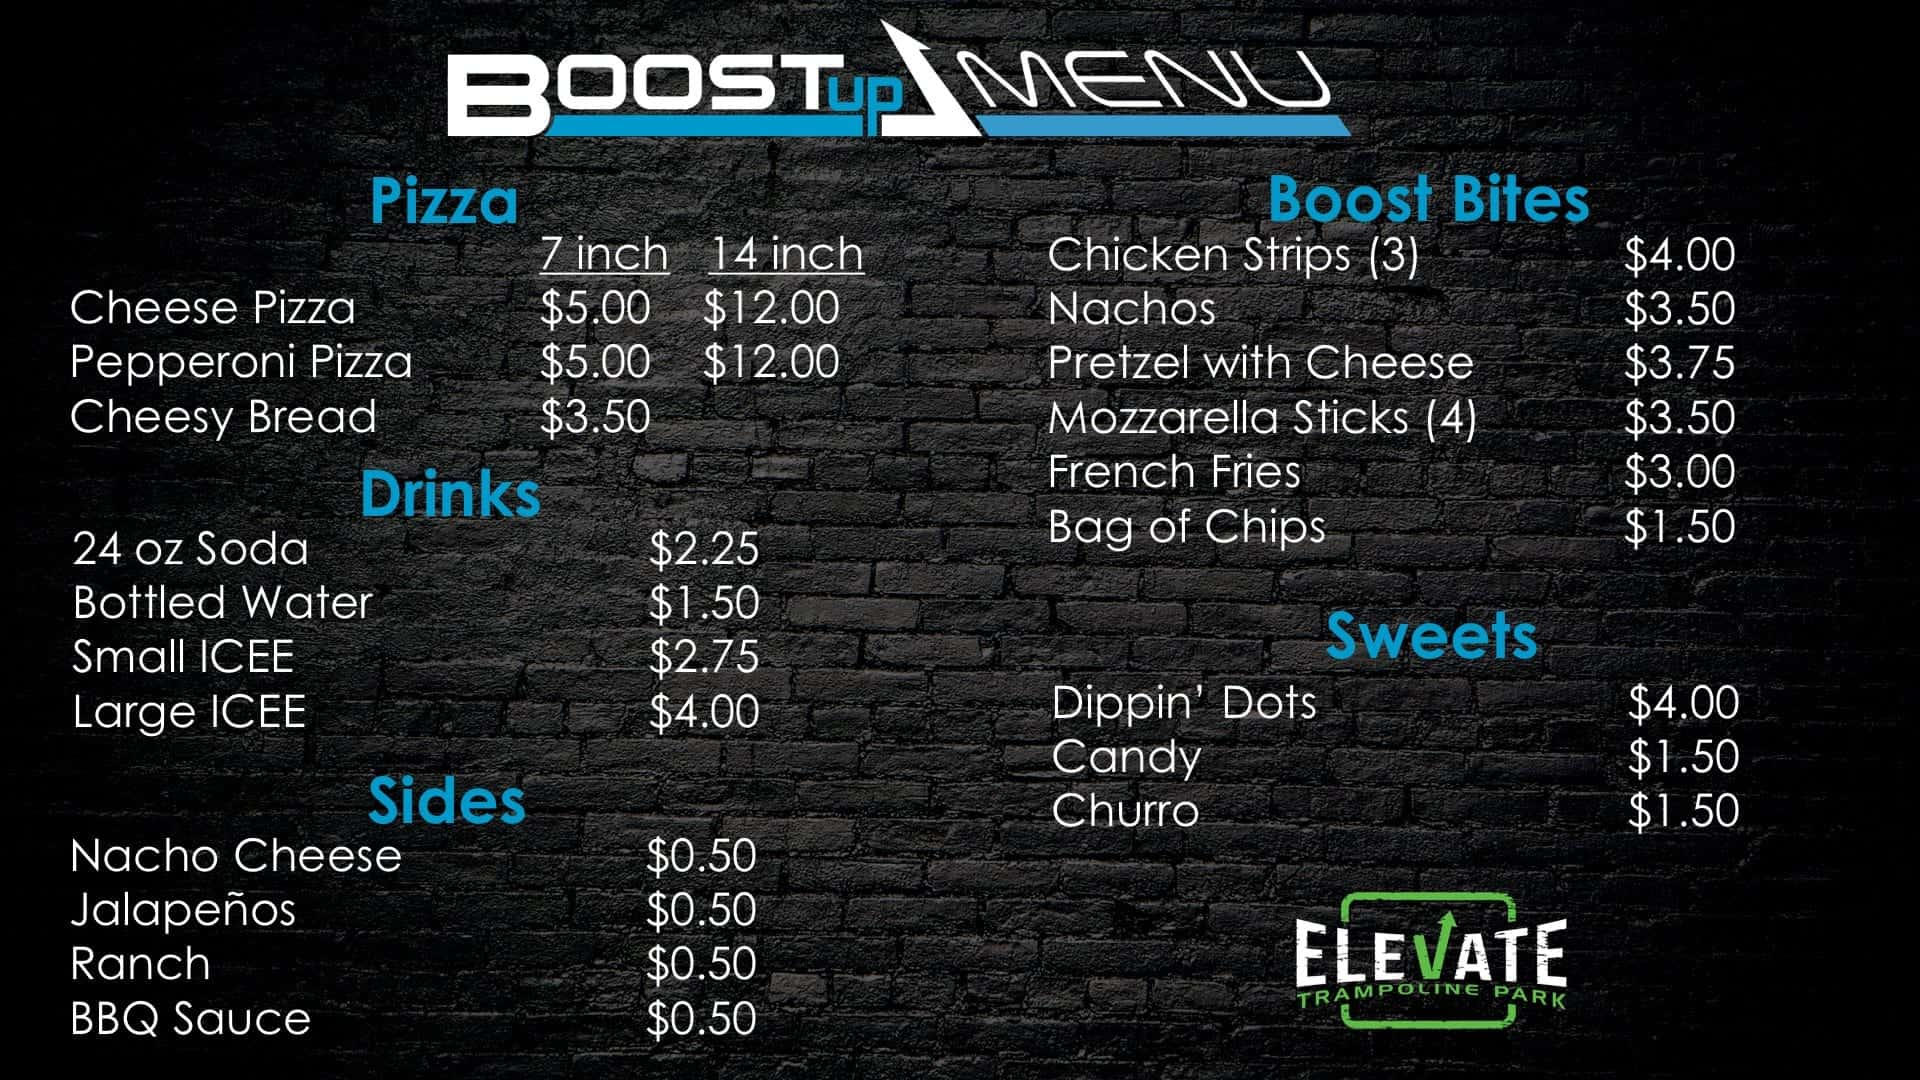 EV8 Goodyear Pricing Menu - Boost Up - 2.28.18